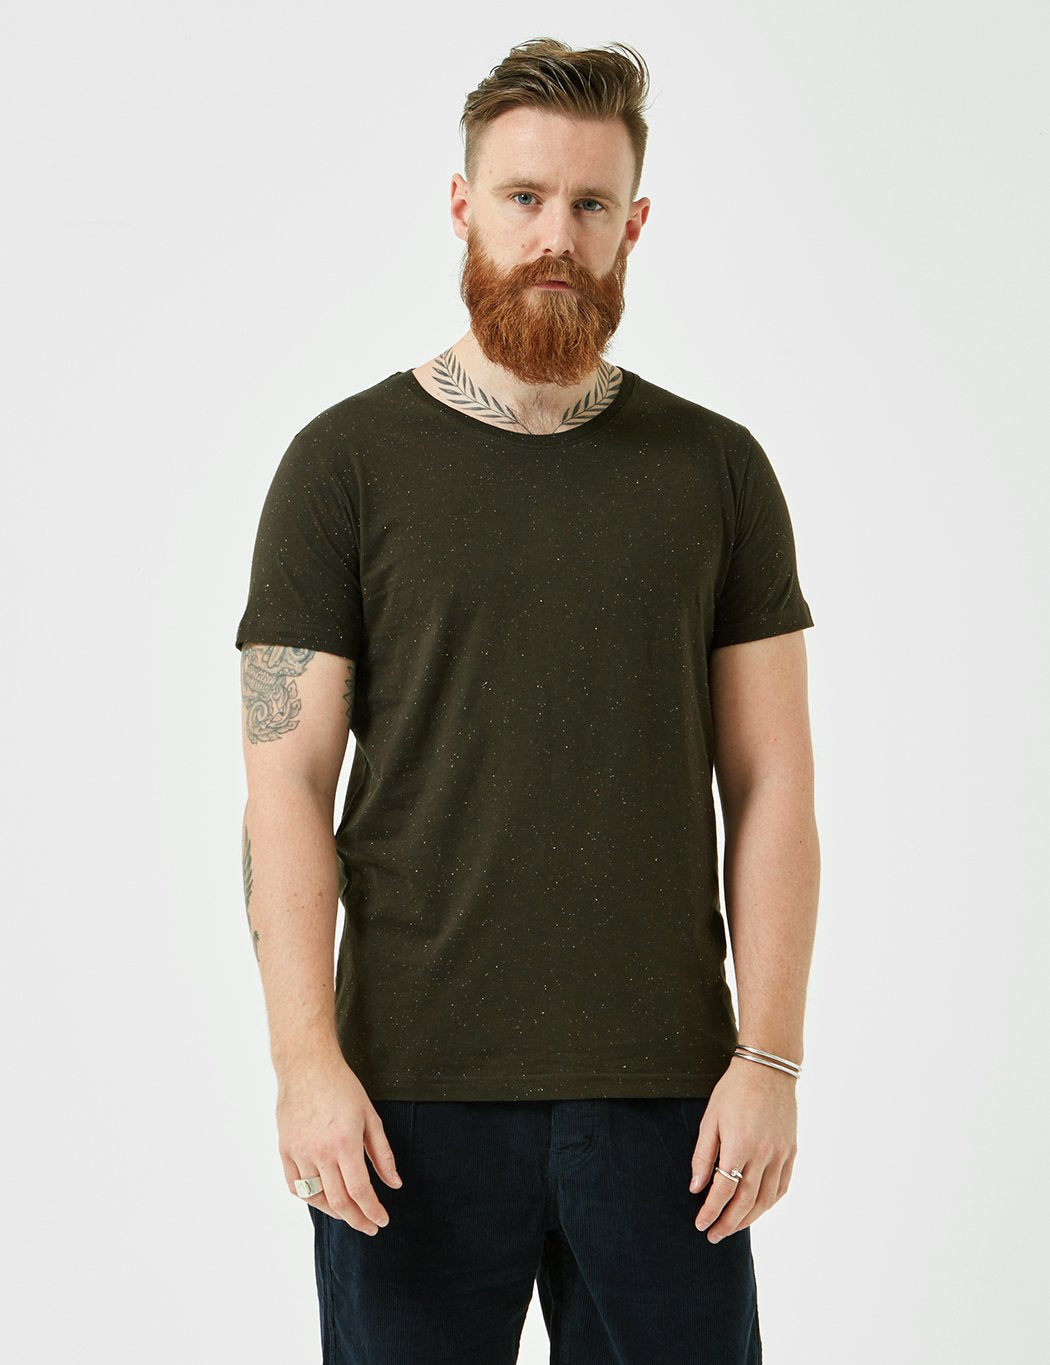 Suit Broadway T-Shirt - Very Dark Green